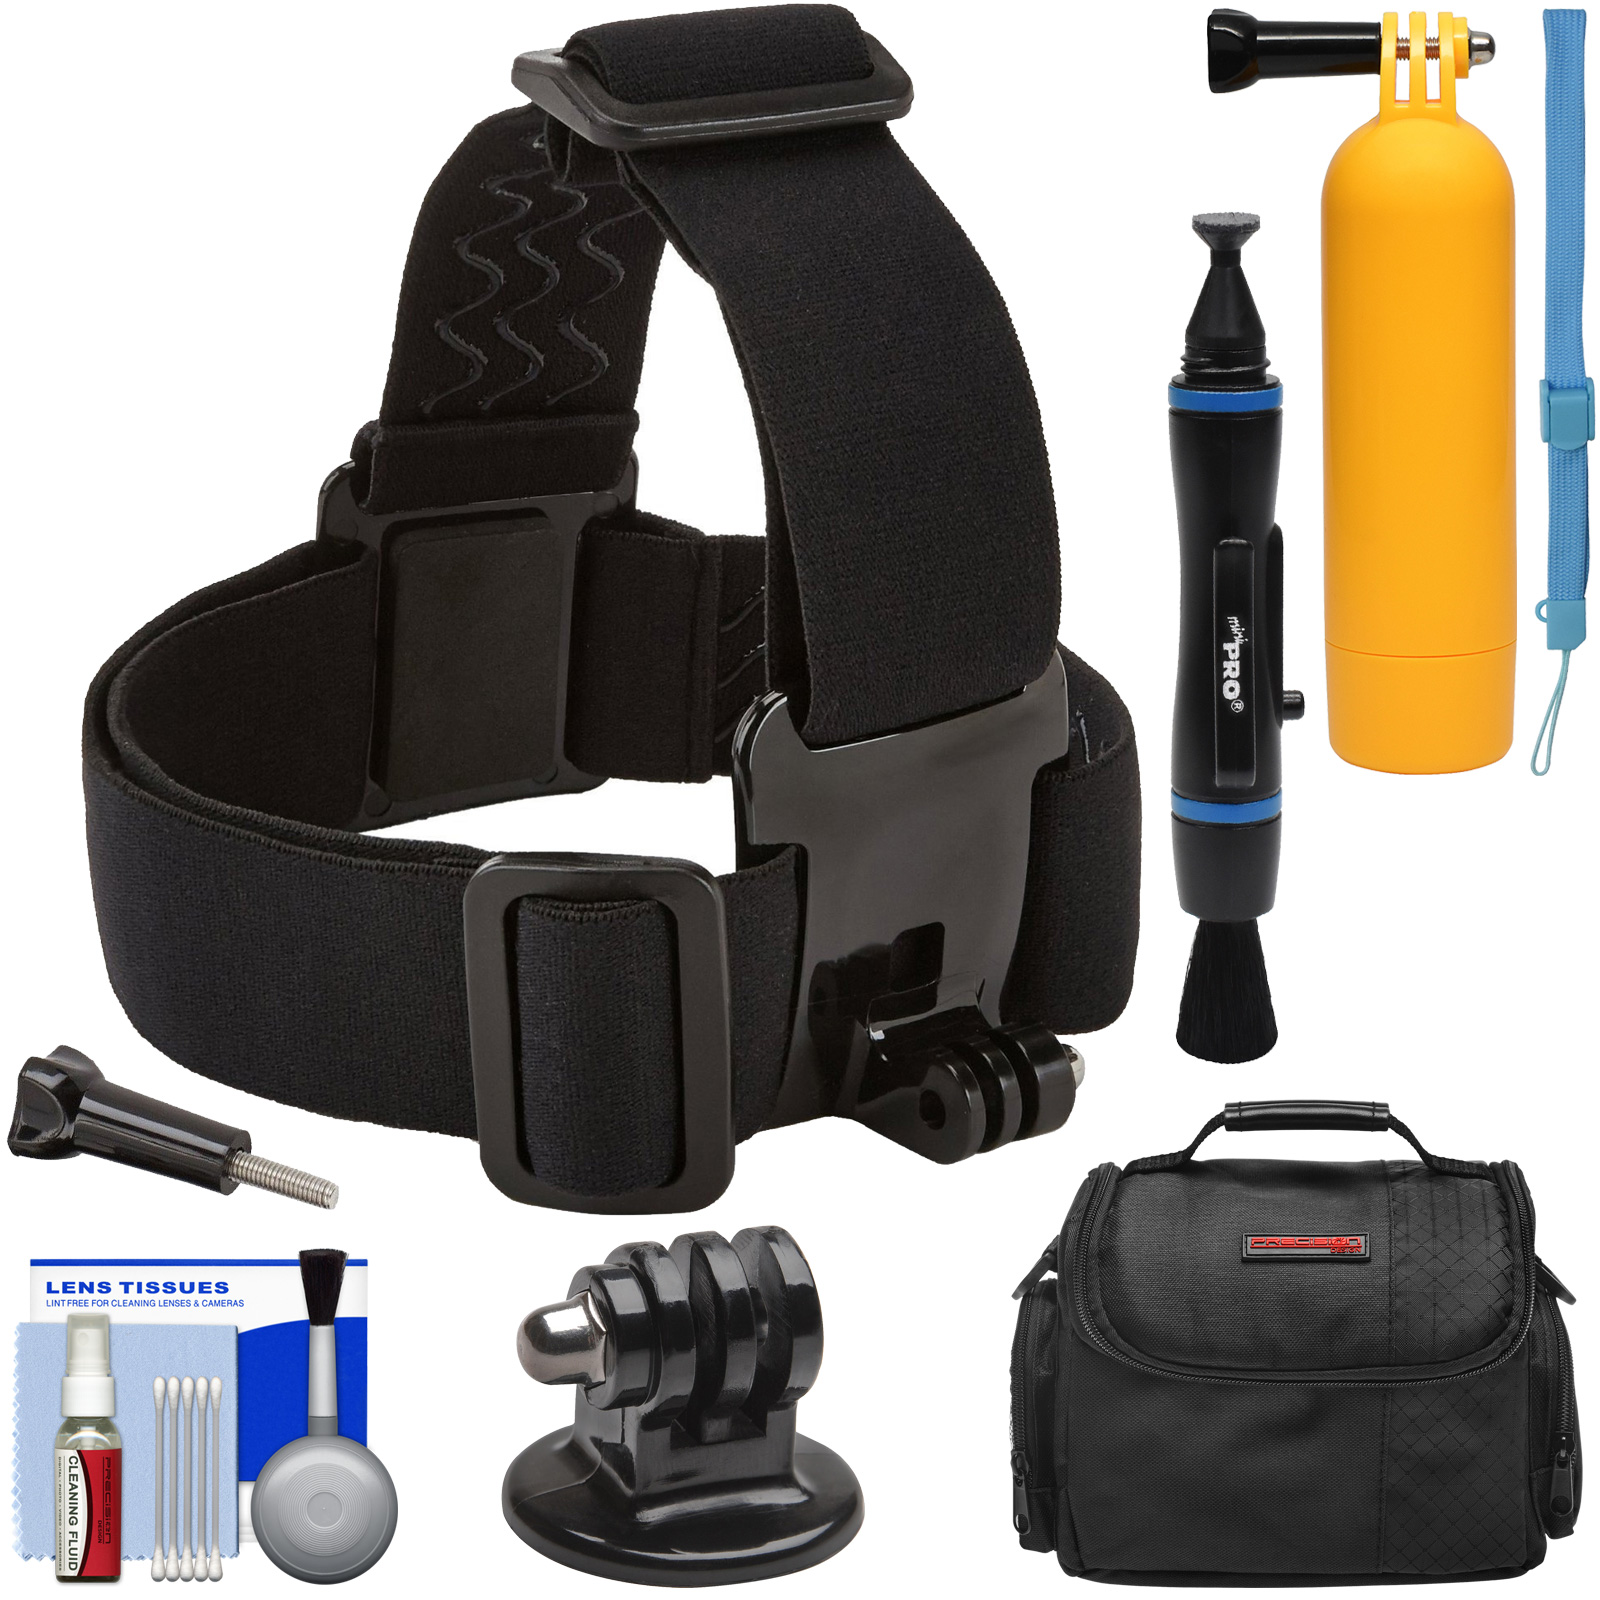 Sunpak Action Camera Head Strap Mount with Buoy Hand Grip + Wrist Strap + Case + Adapter + Lens Pen + Kit